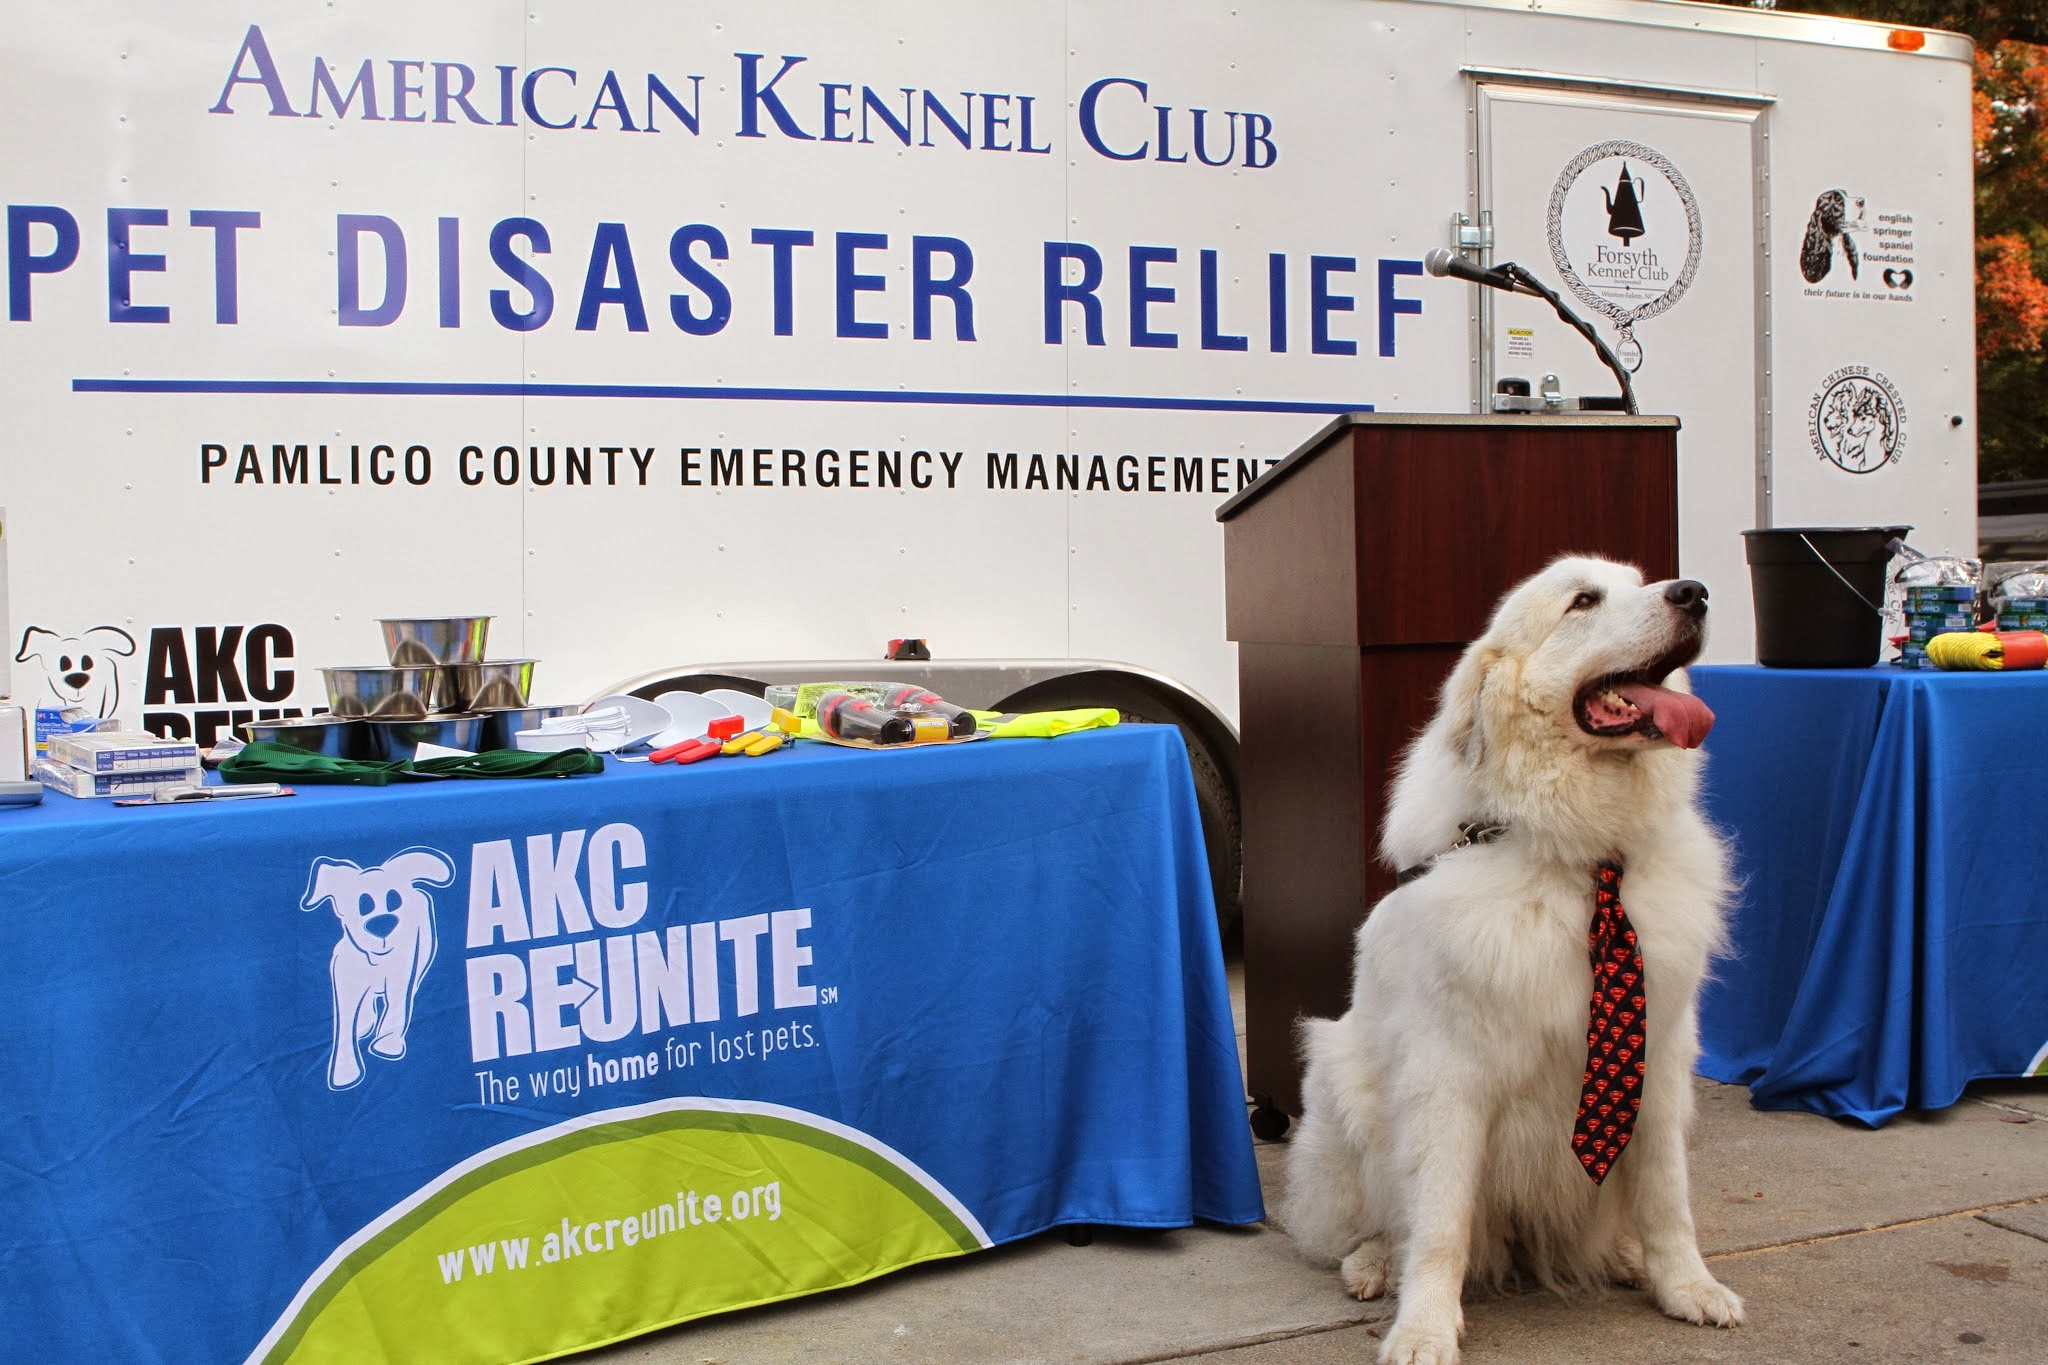 AKC Pet Disaster Relief Rolls Out Help for Pets Across the Country